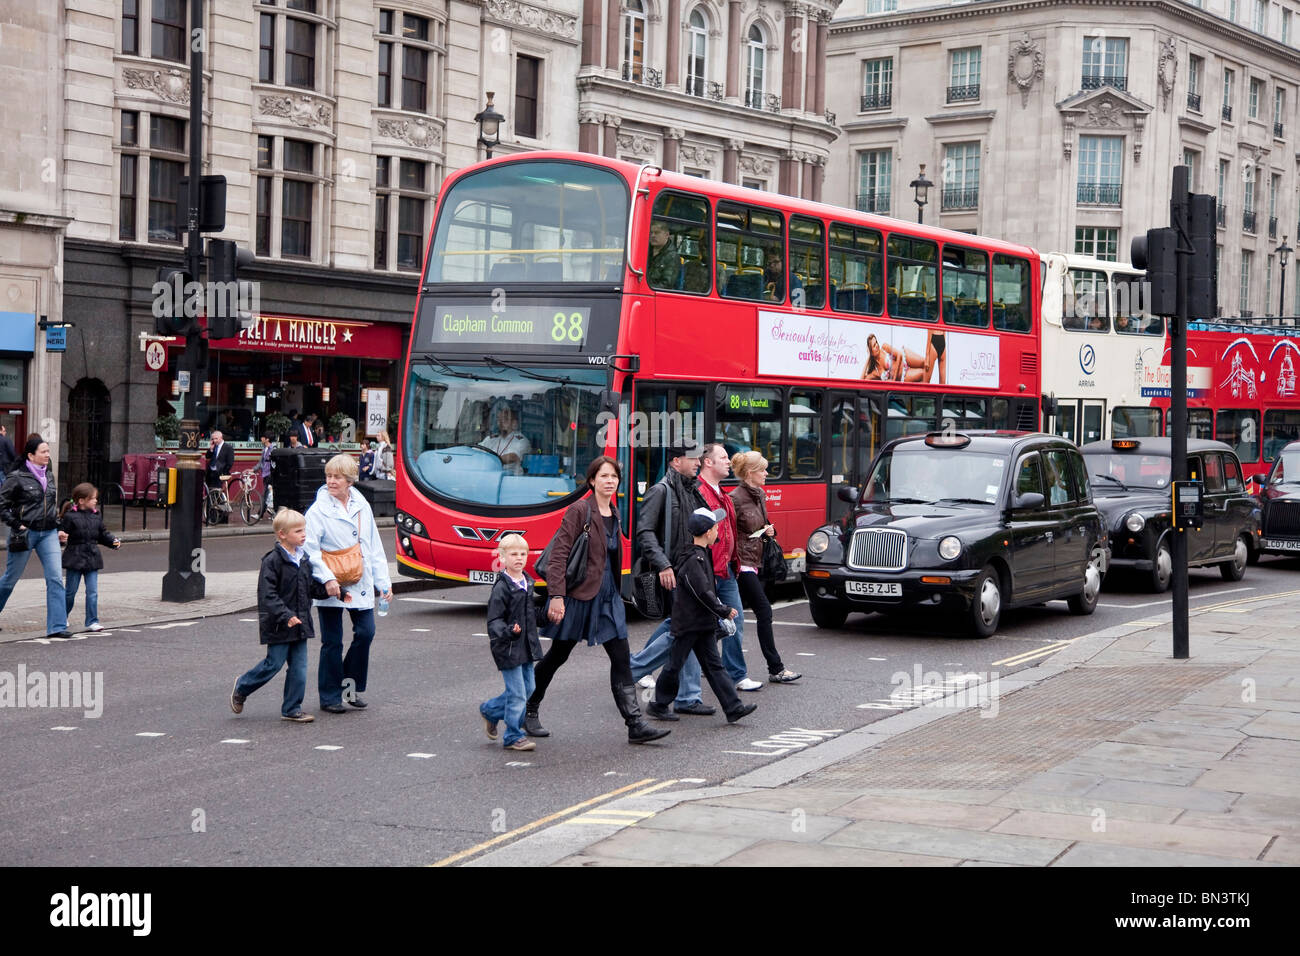 Street scene in the centre of London with black taxi cab and red doubledecker bus, London - Stock Image